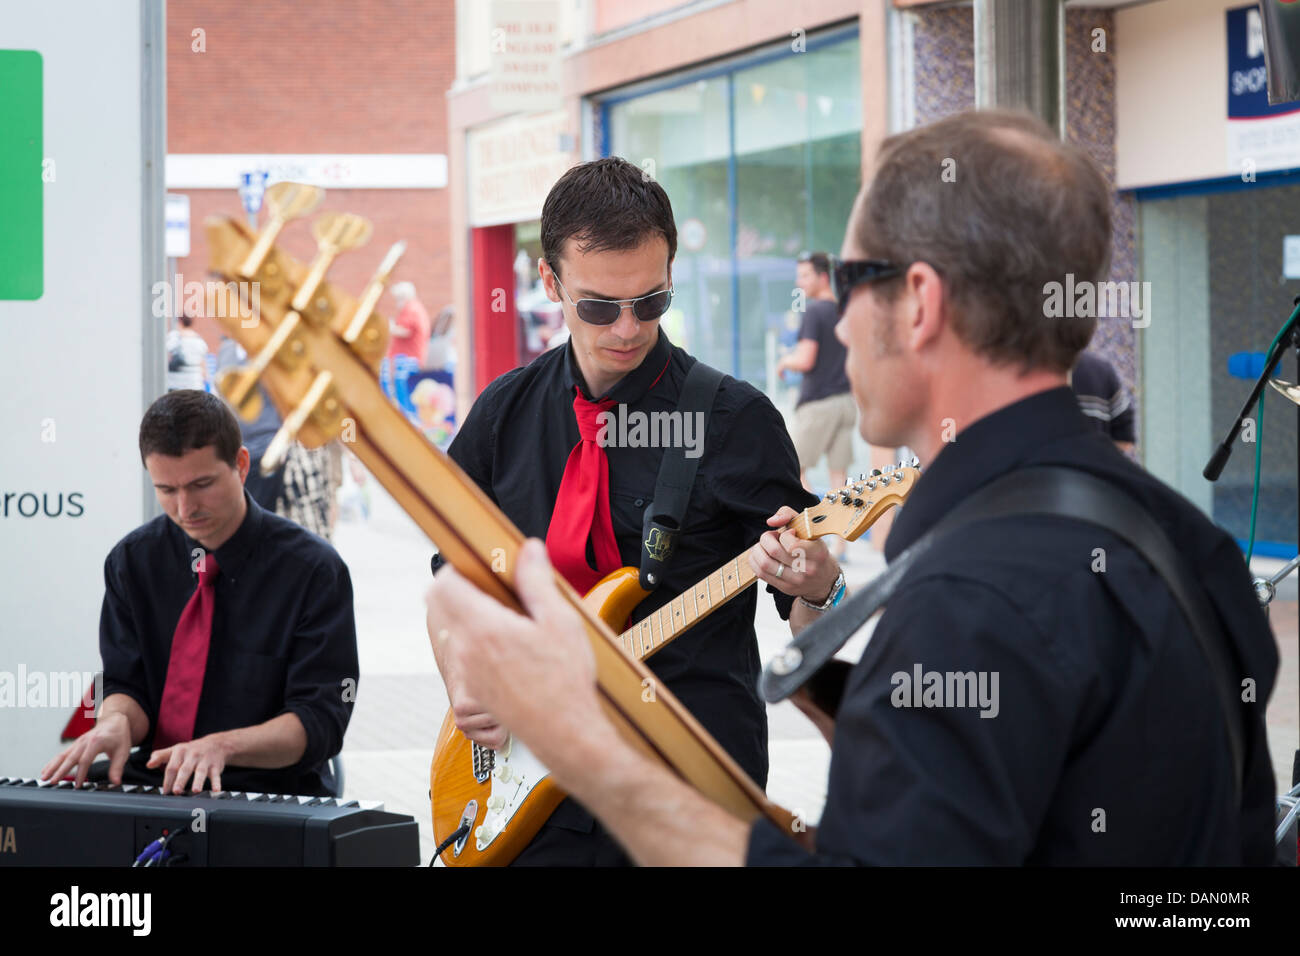 musical group guitarist and keyboards player - Stock Image